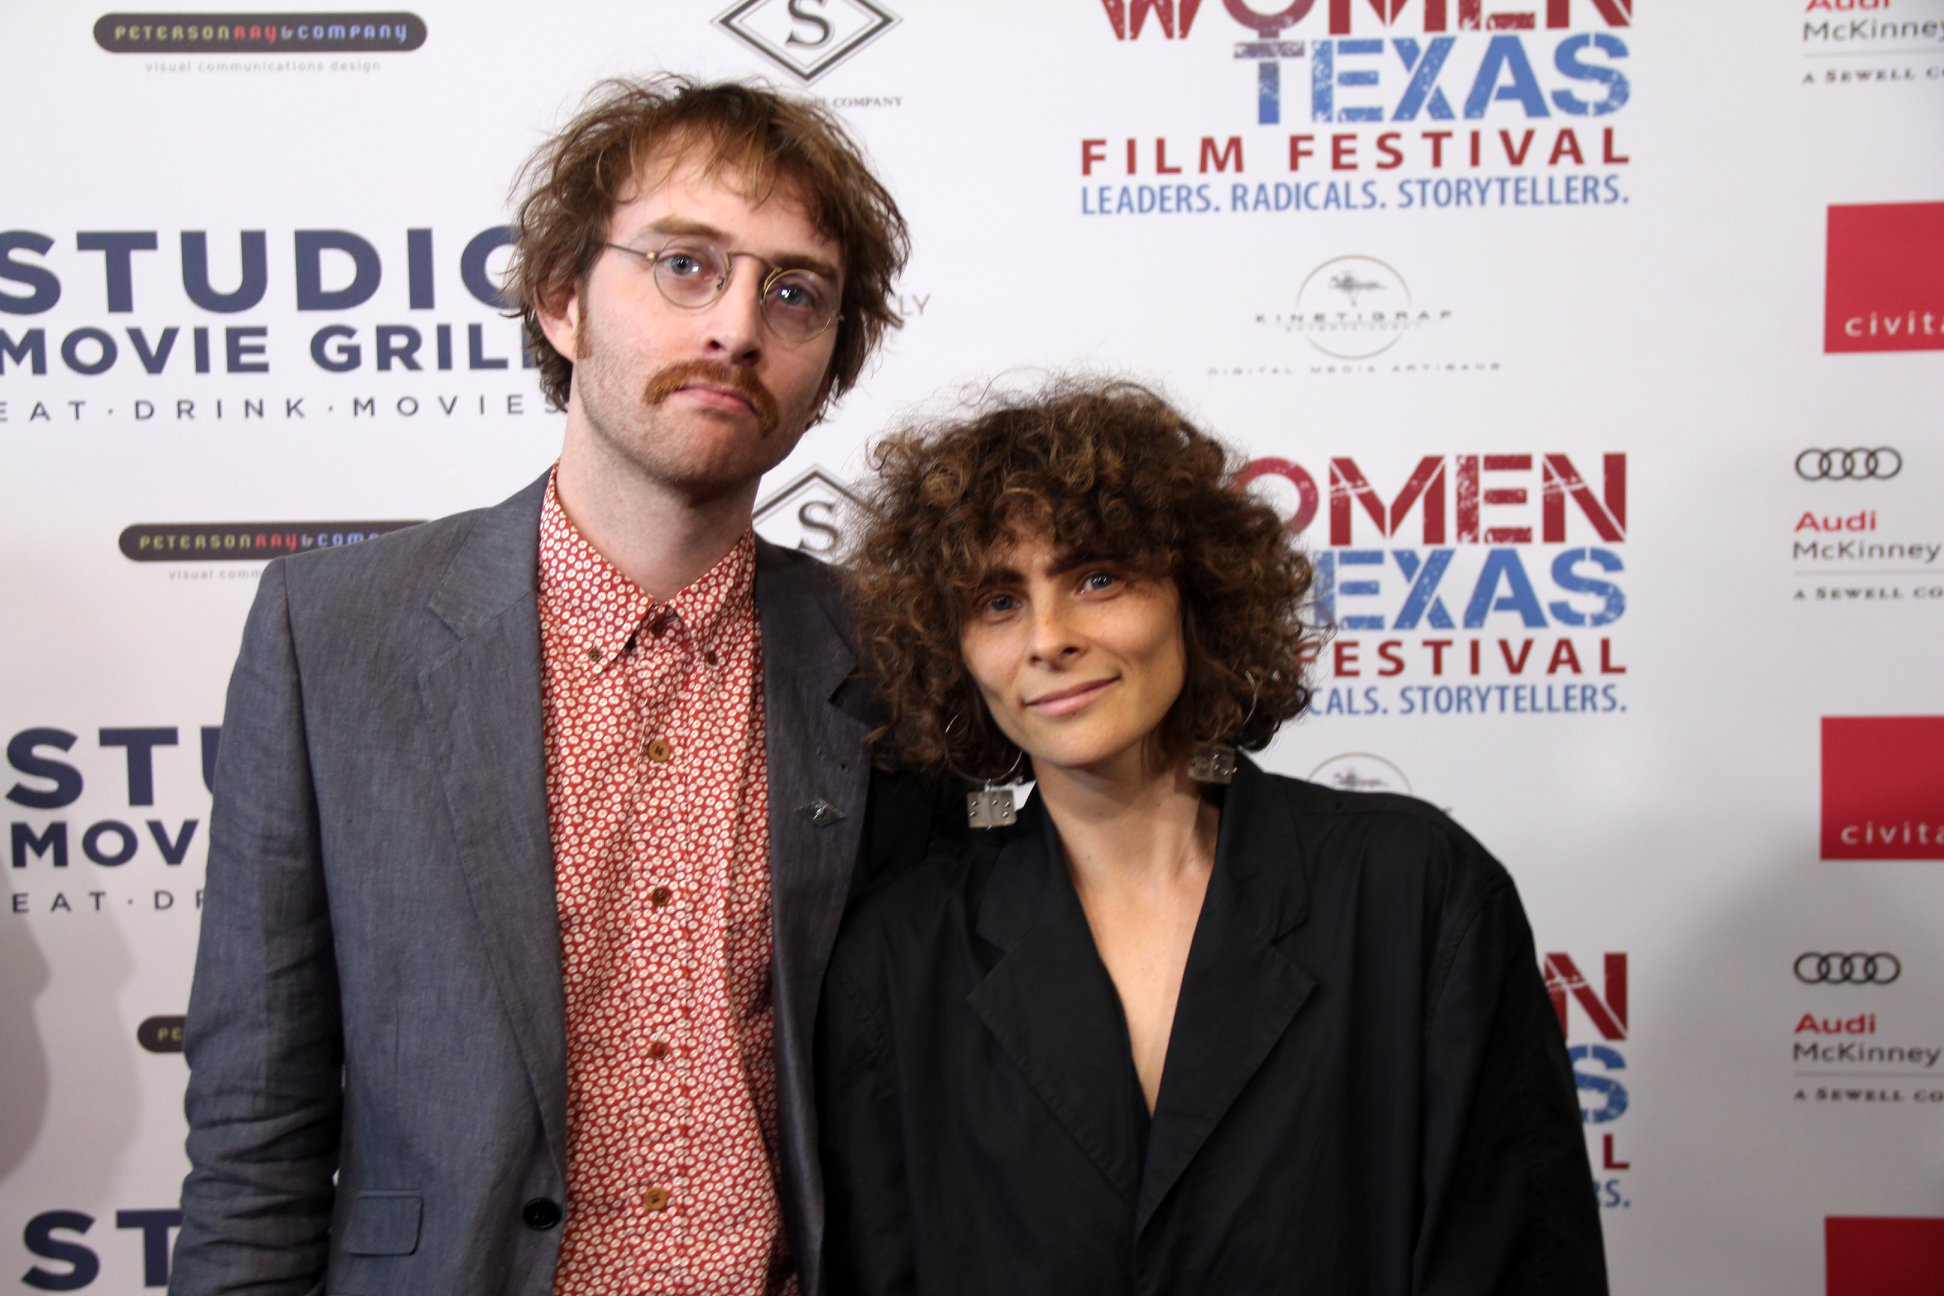 Noel David Taylor and Amanda Kramer on the red carpet ahead of the world premiere of 'Paris Window' at the 2018 Women Texas Film Festival